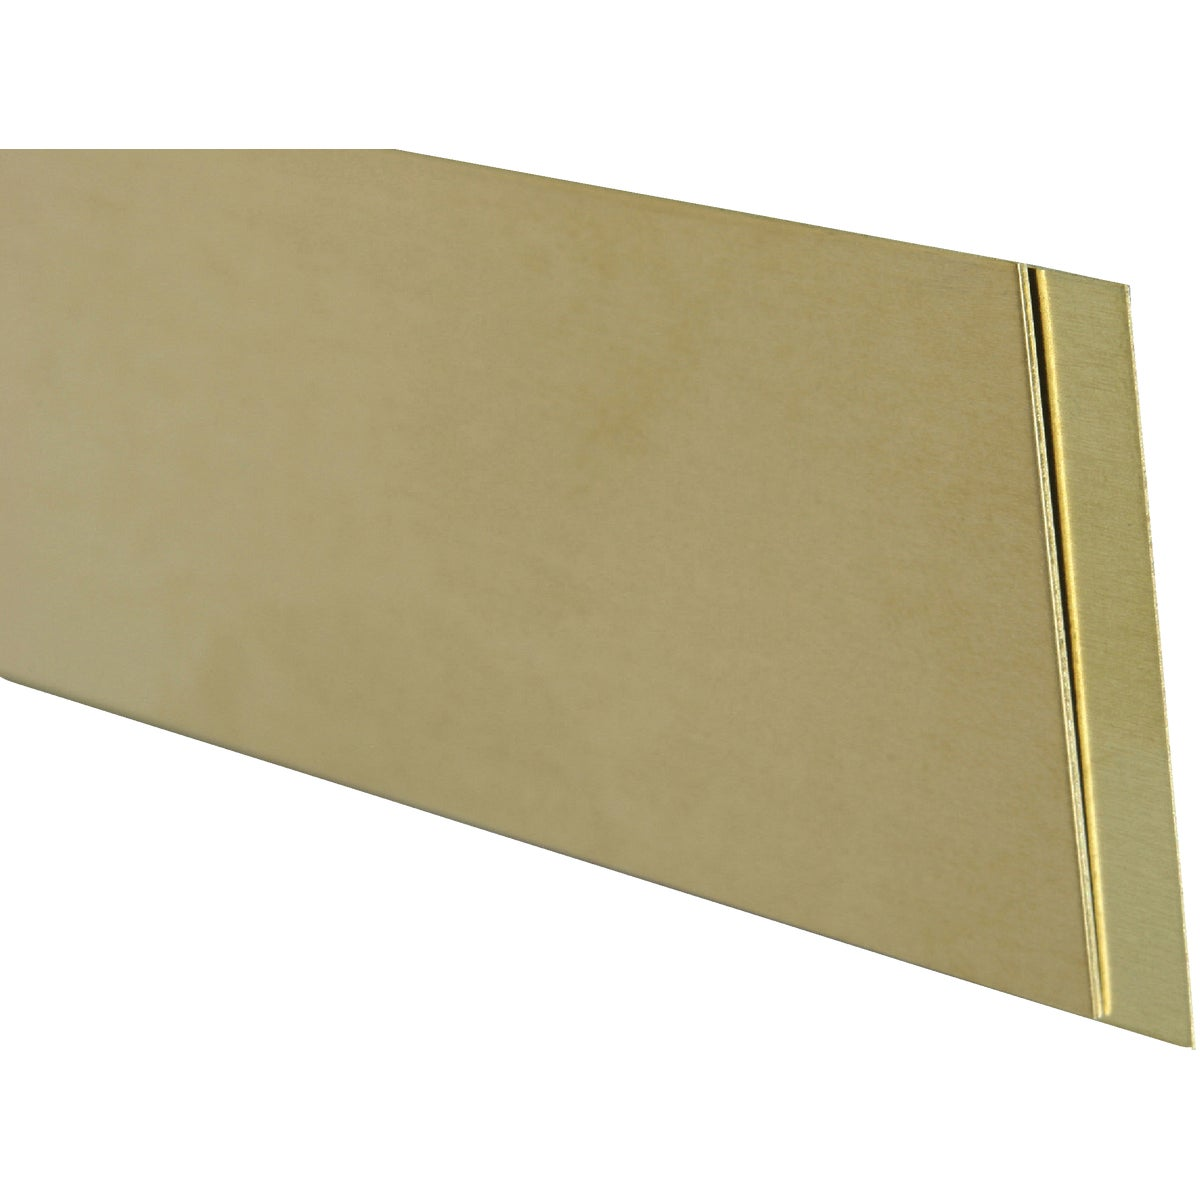 .016X2X12 BRASS STRIP - 8234 by K&s Precision Metals